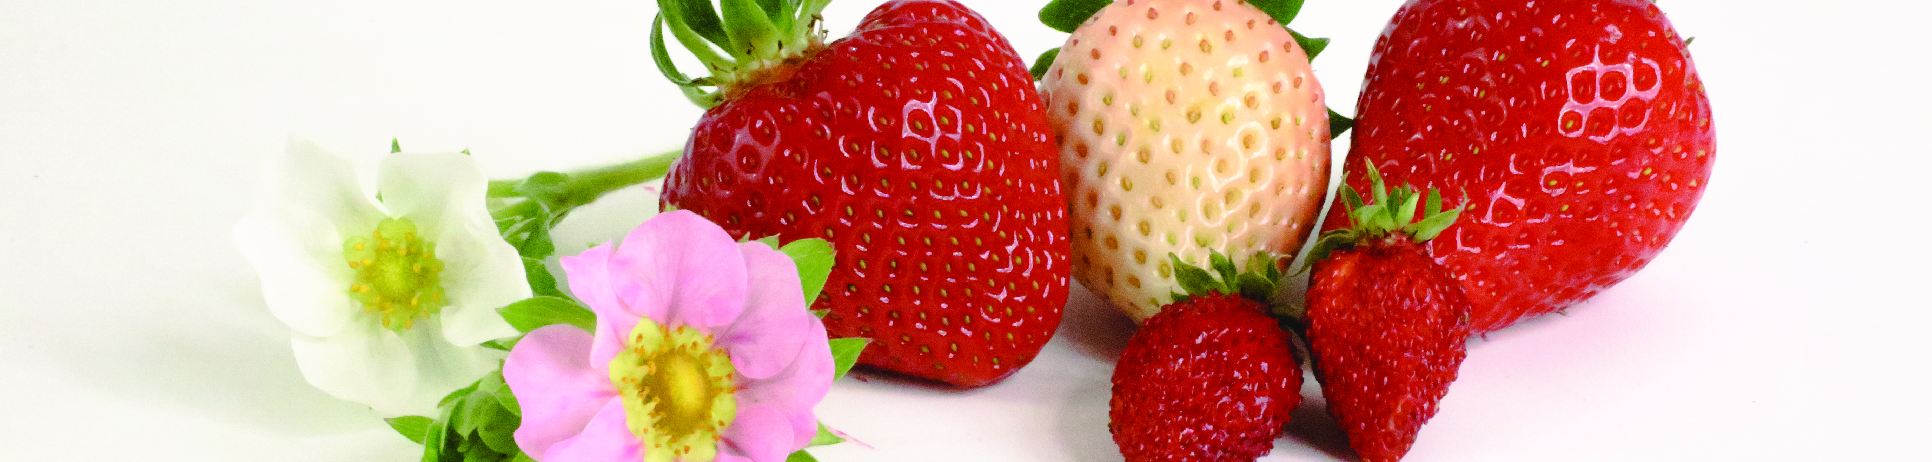 Berrylab Straberry Breeding Varieties